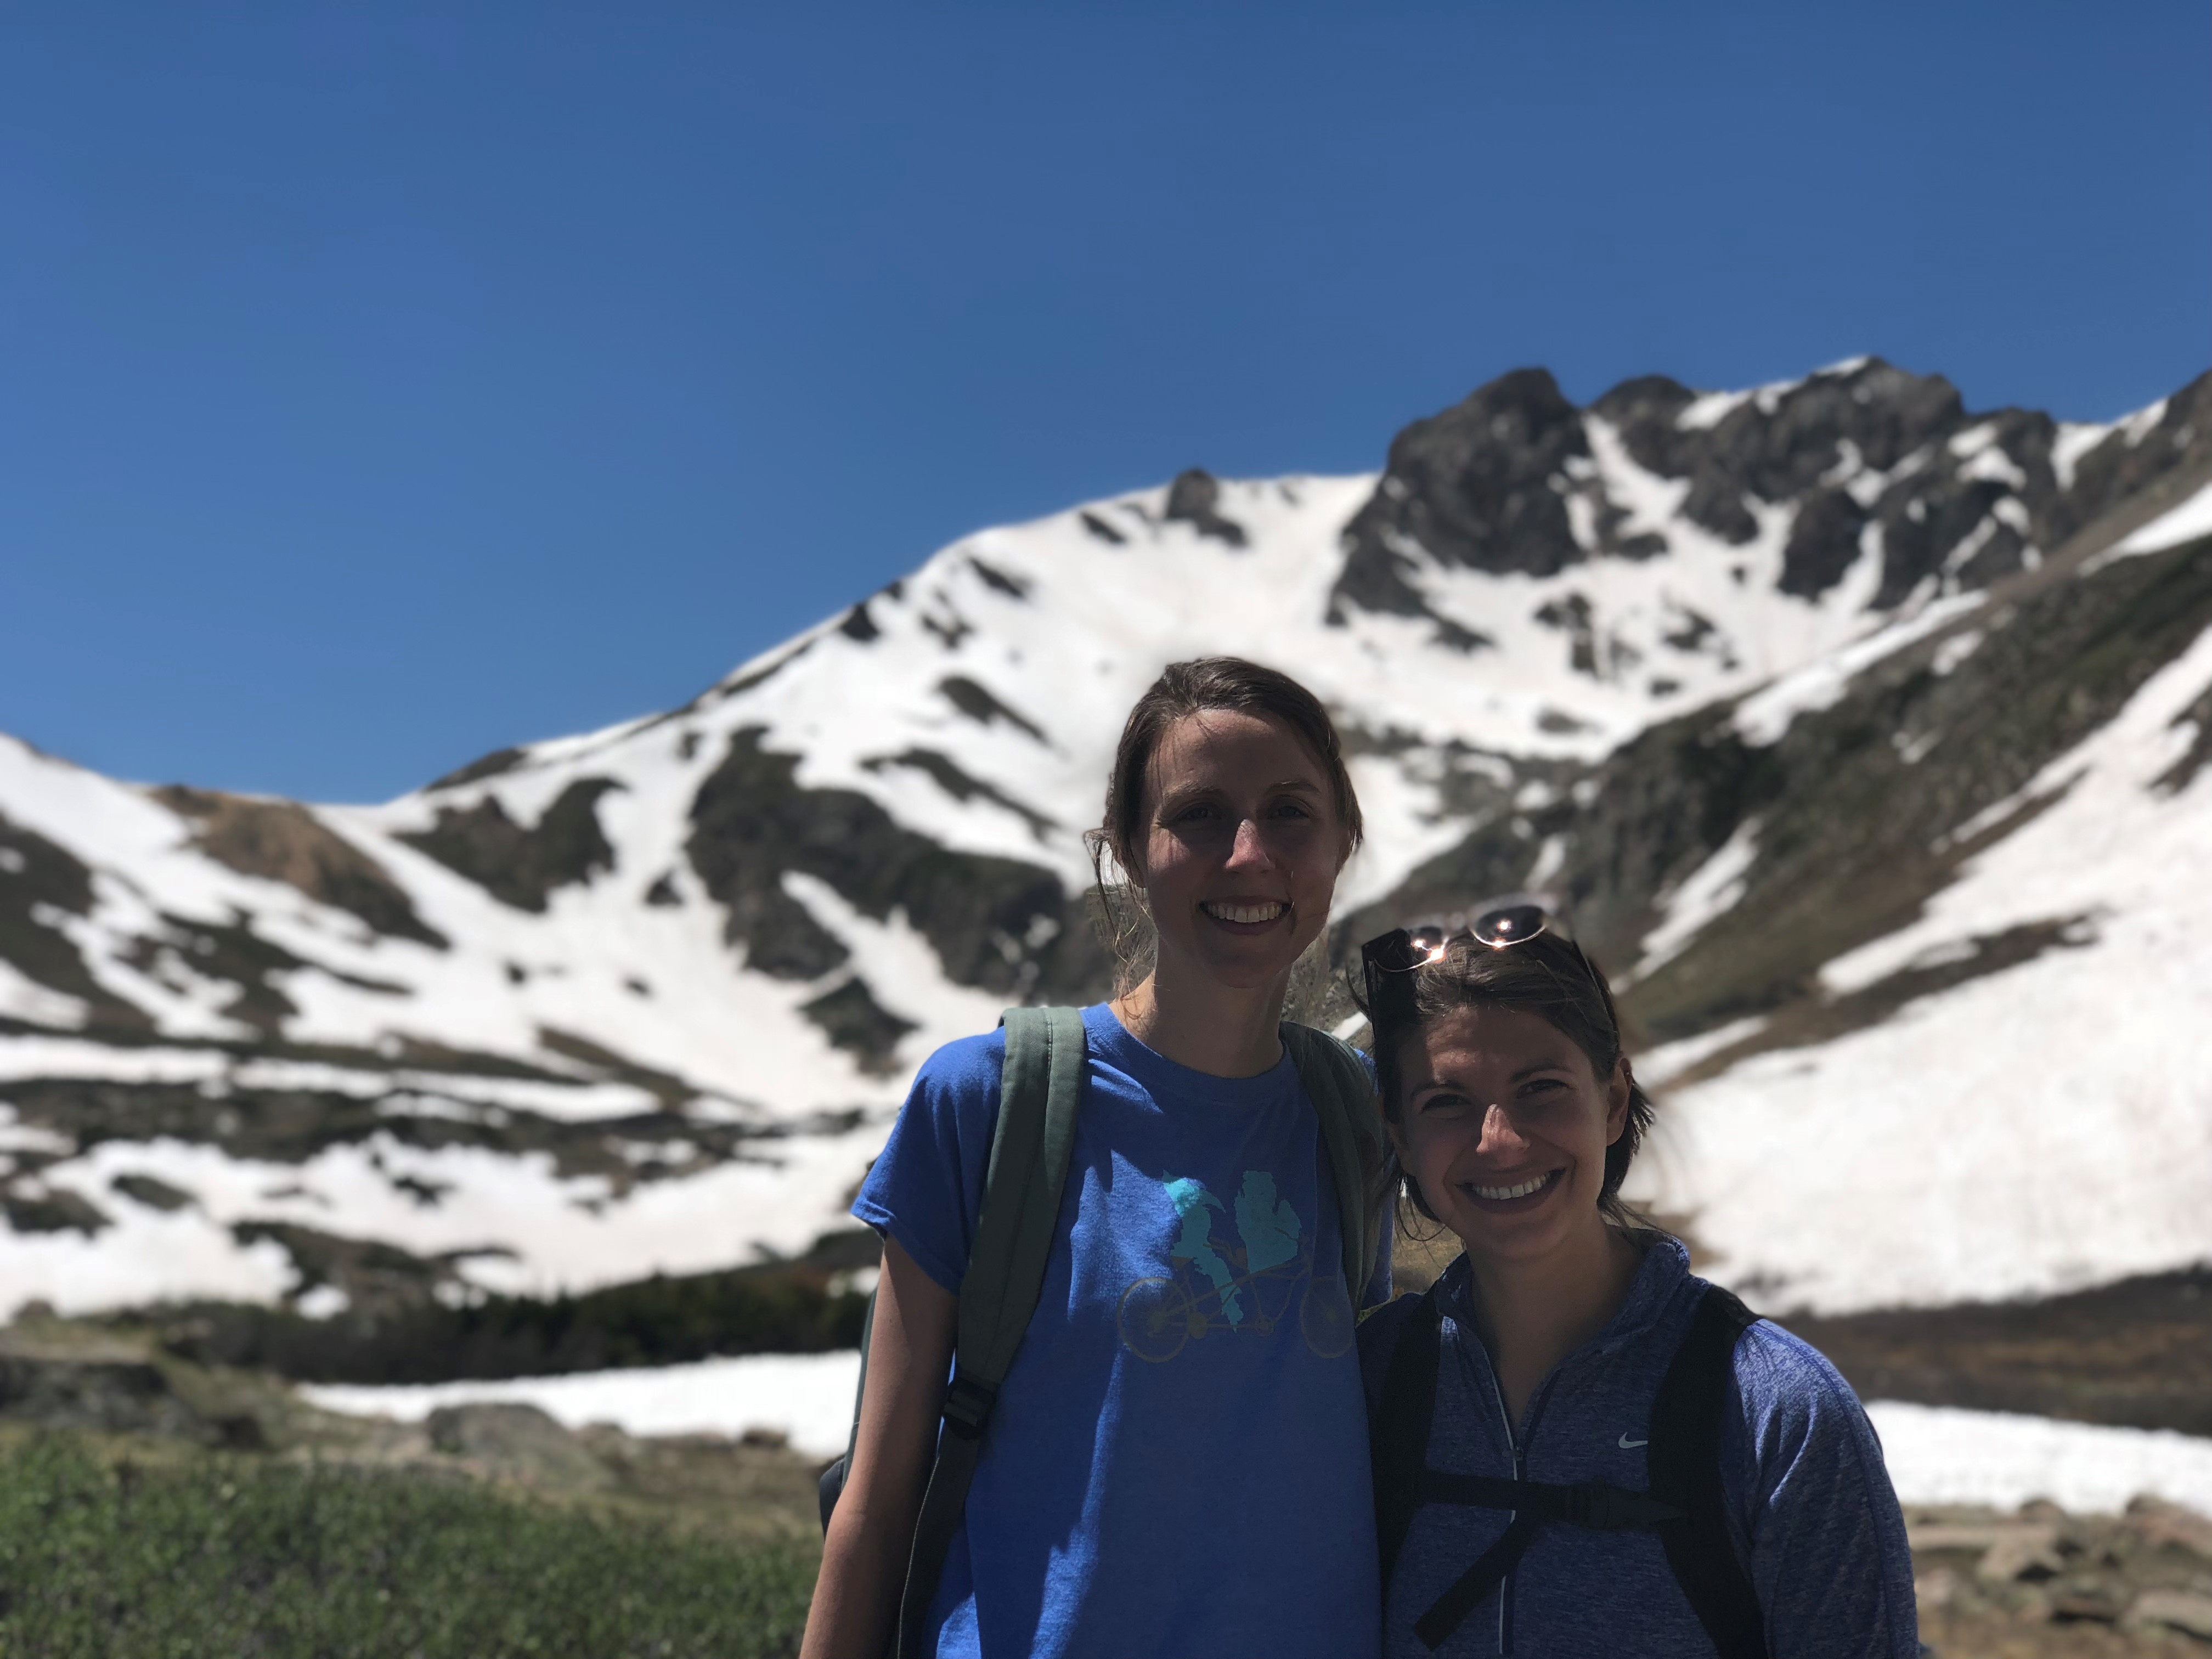 Two sweaty people on mountain hike above tree line.